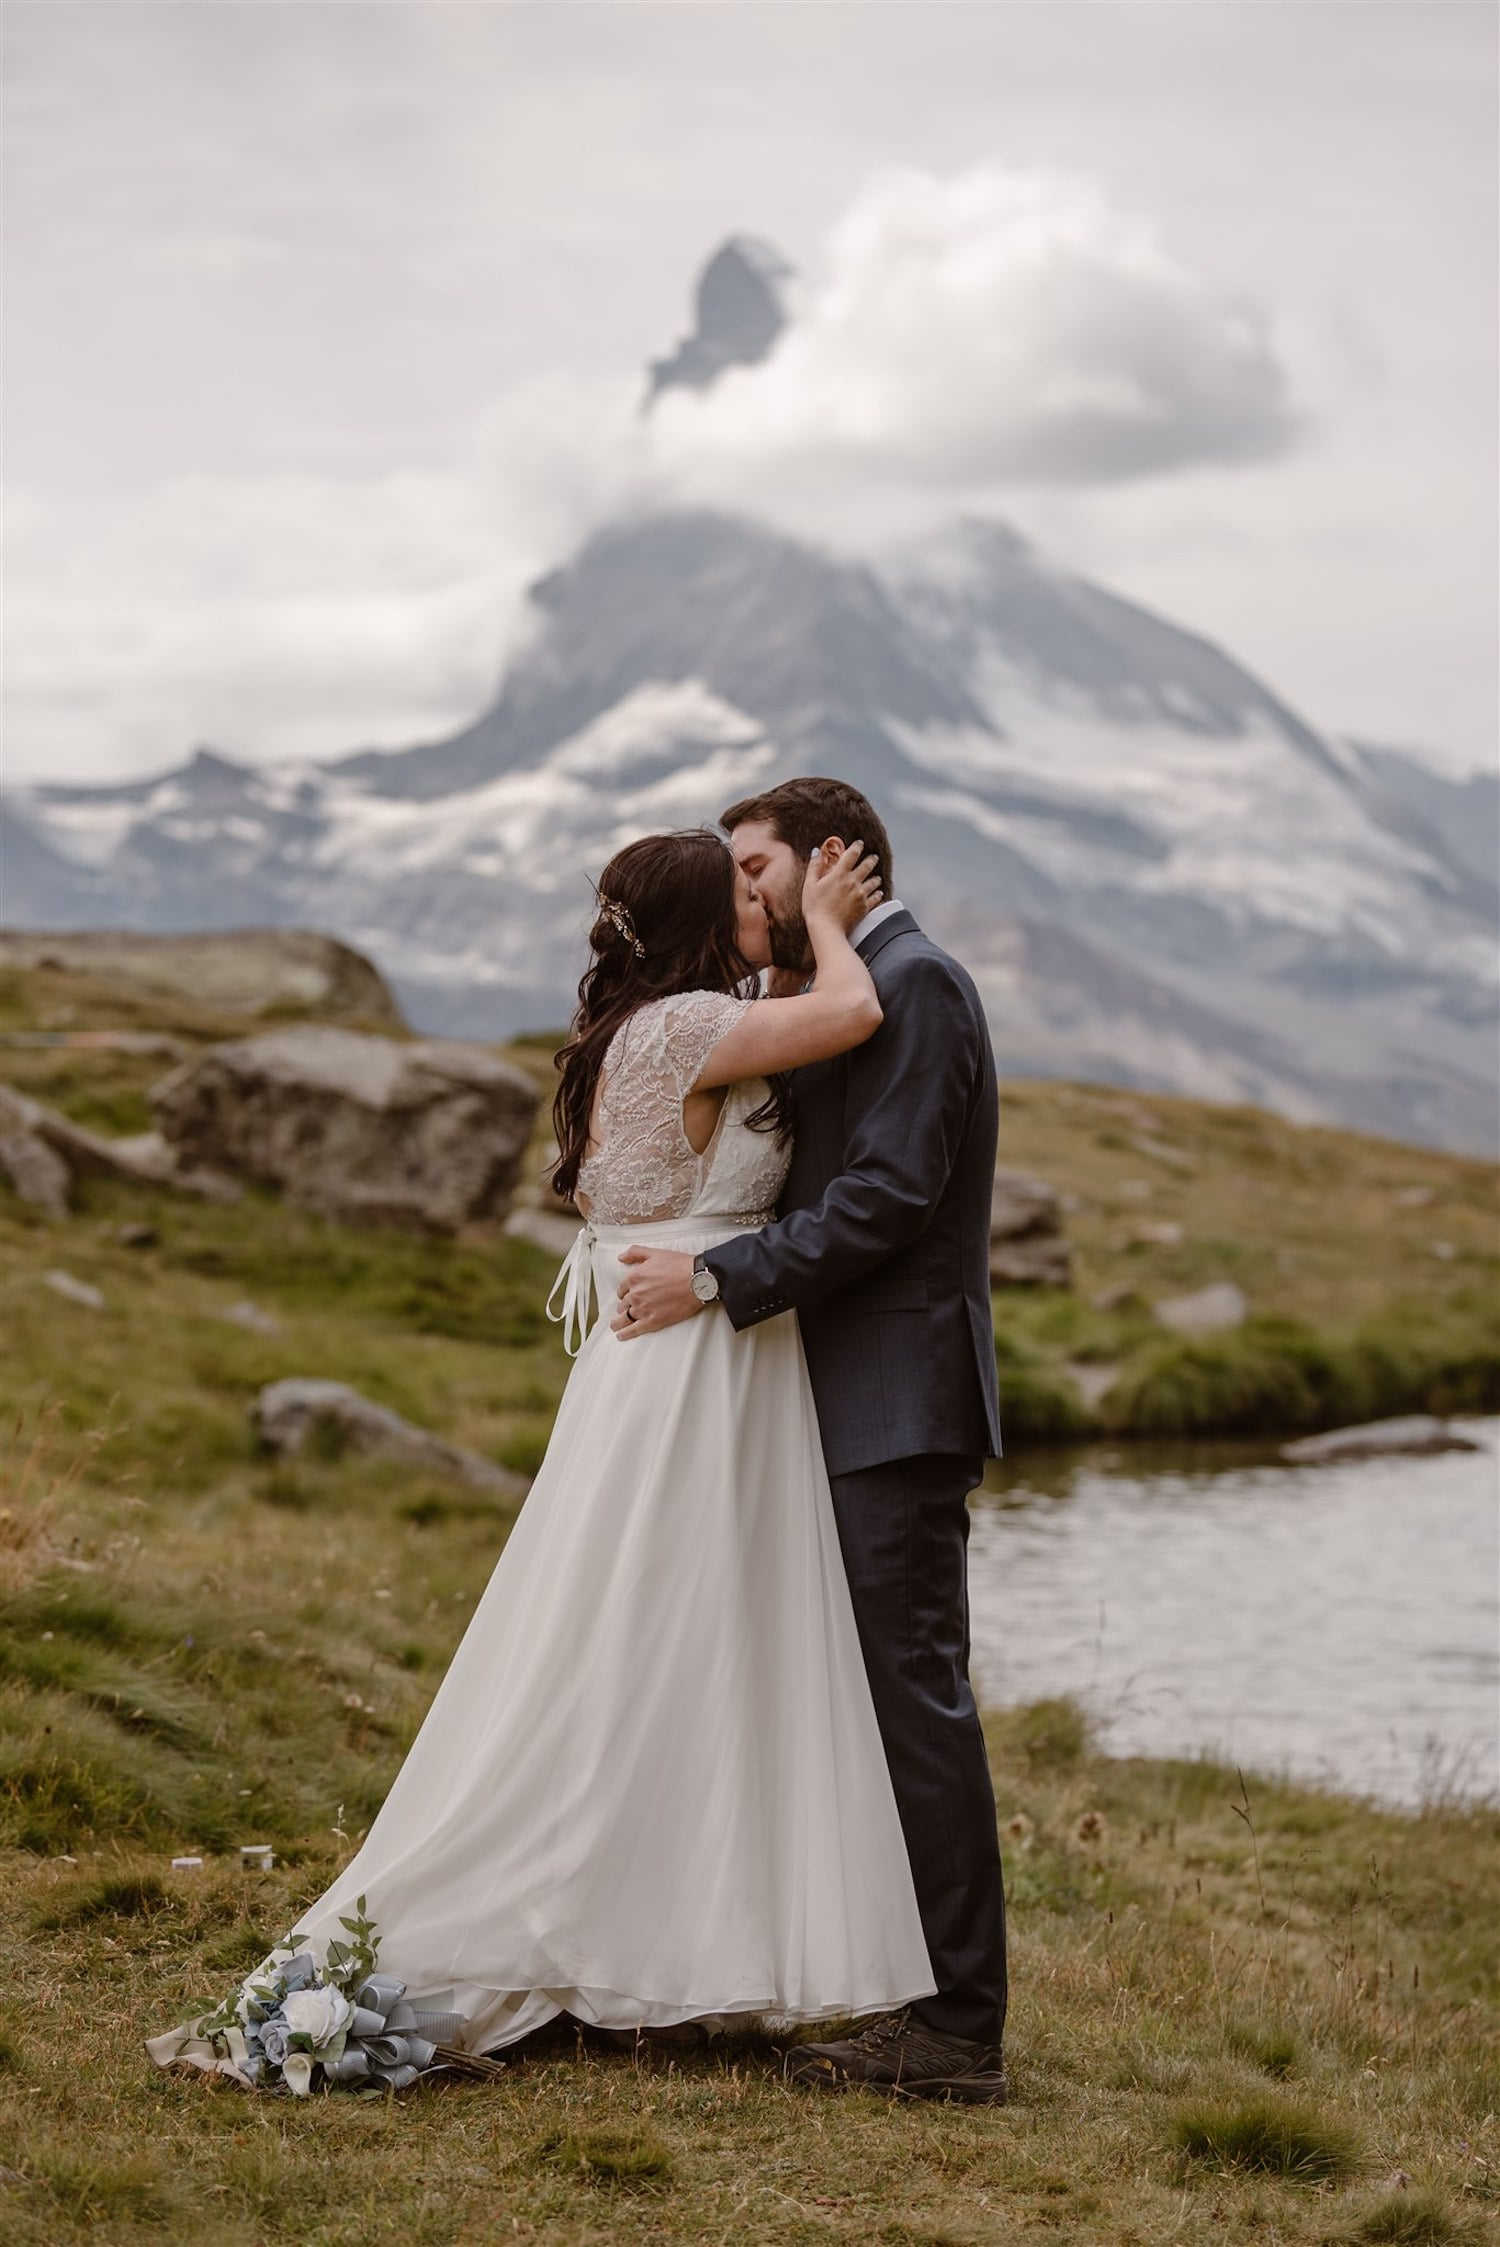 Newlyweds kissing in front of the Matterhorn